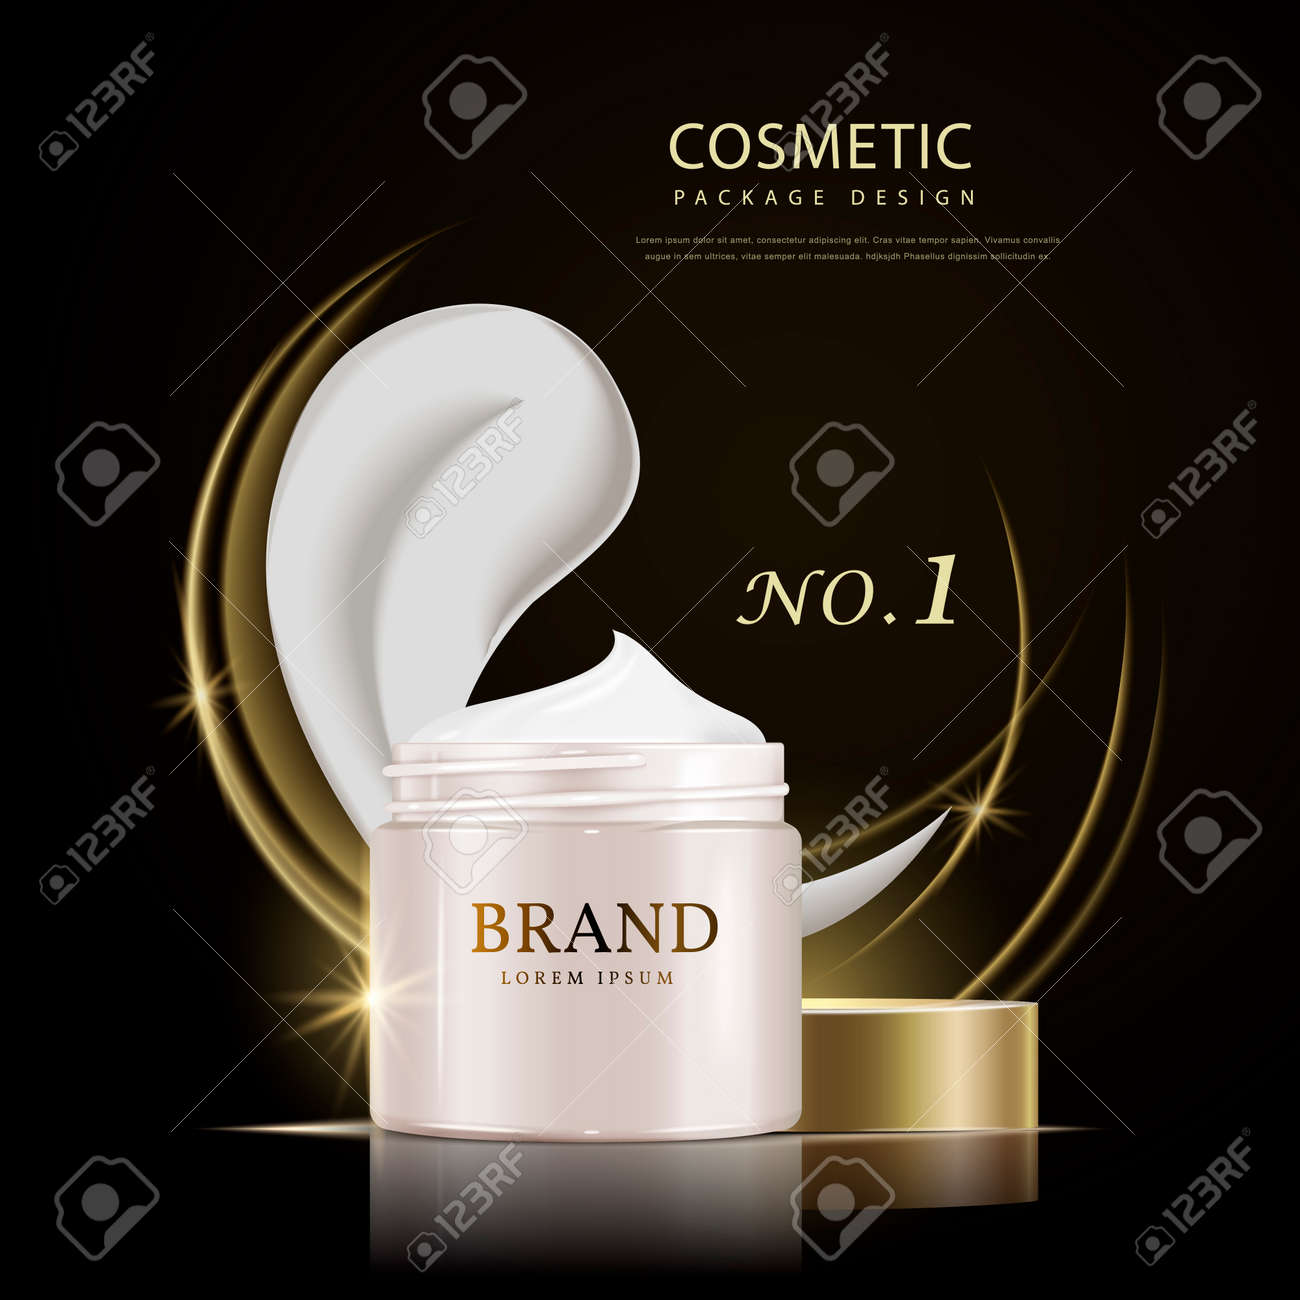 Poster design 3d - Cream Canister Poster Design 3d Illustration Realistic Cosmetic Canister Package Design Isolated On Black Background